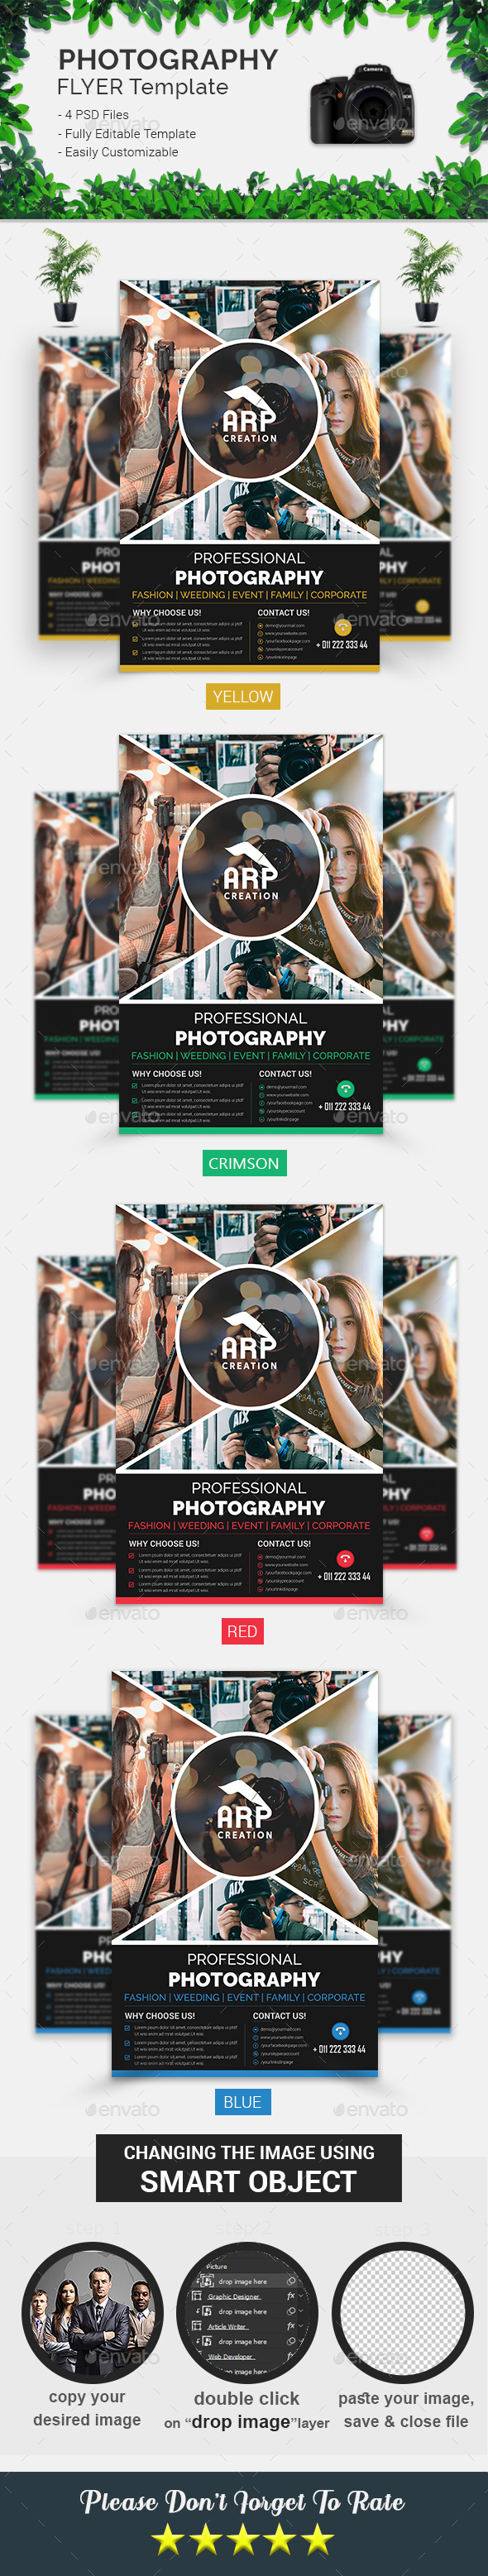 Photography Flyer Template - Corporate Flyers